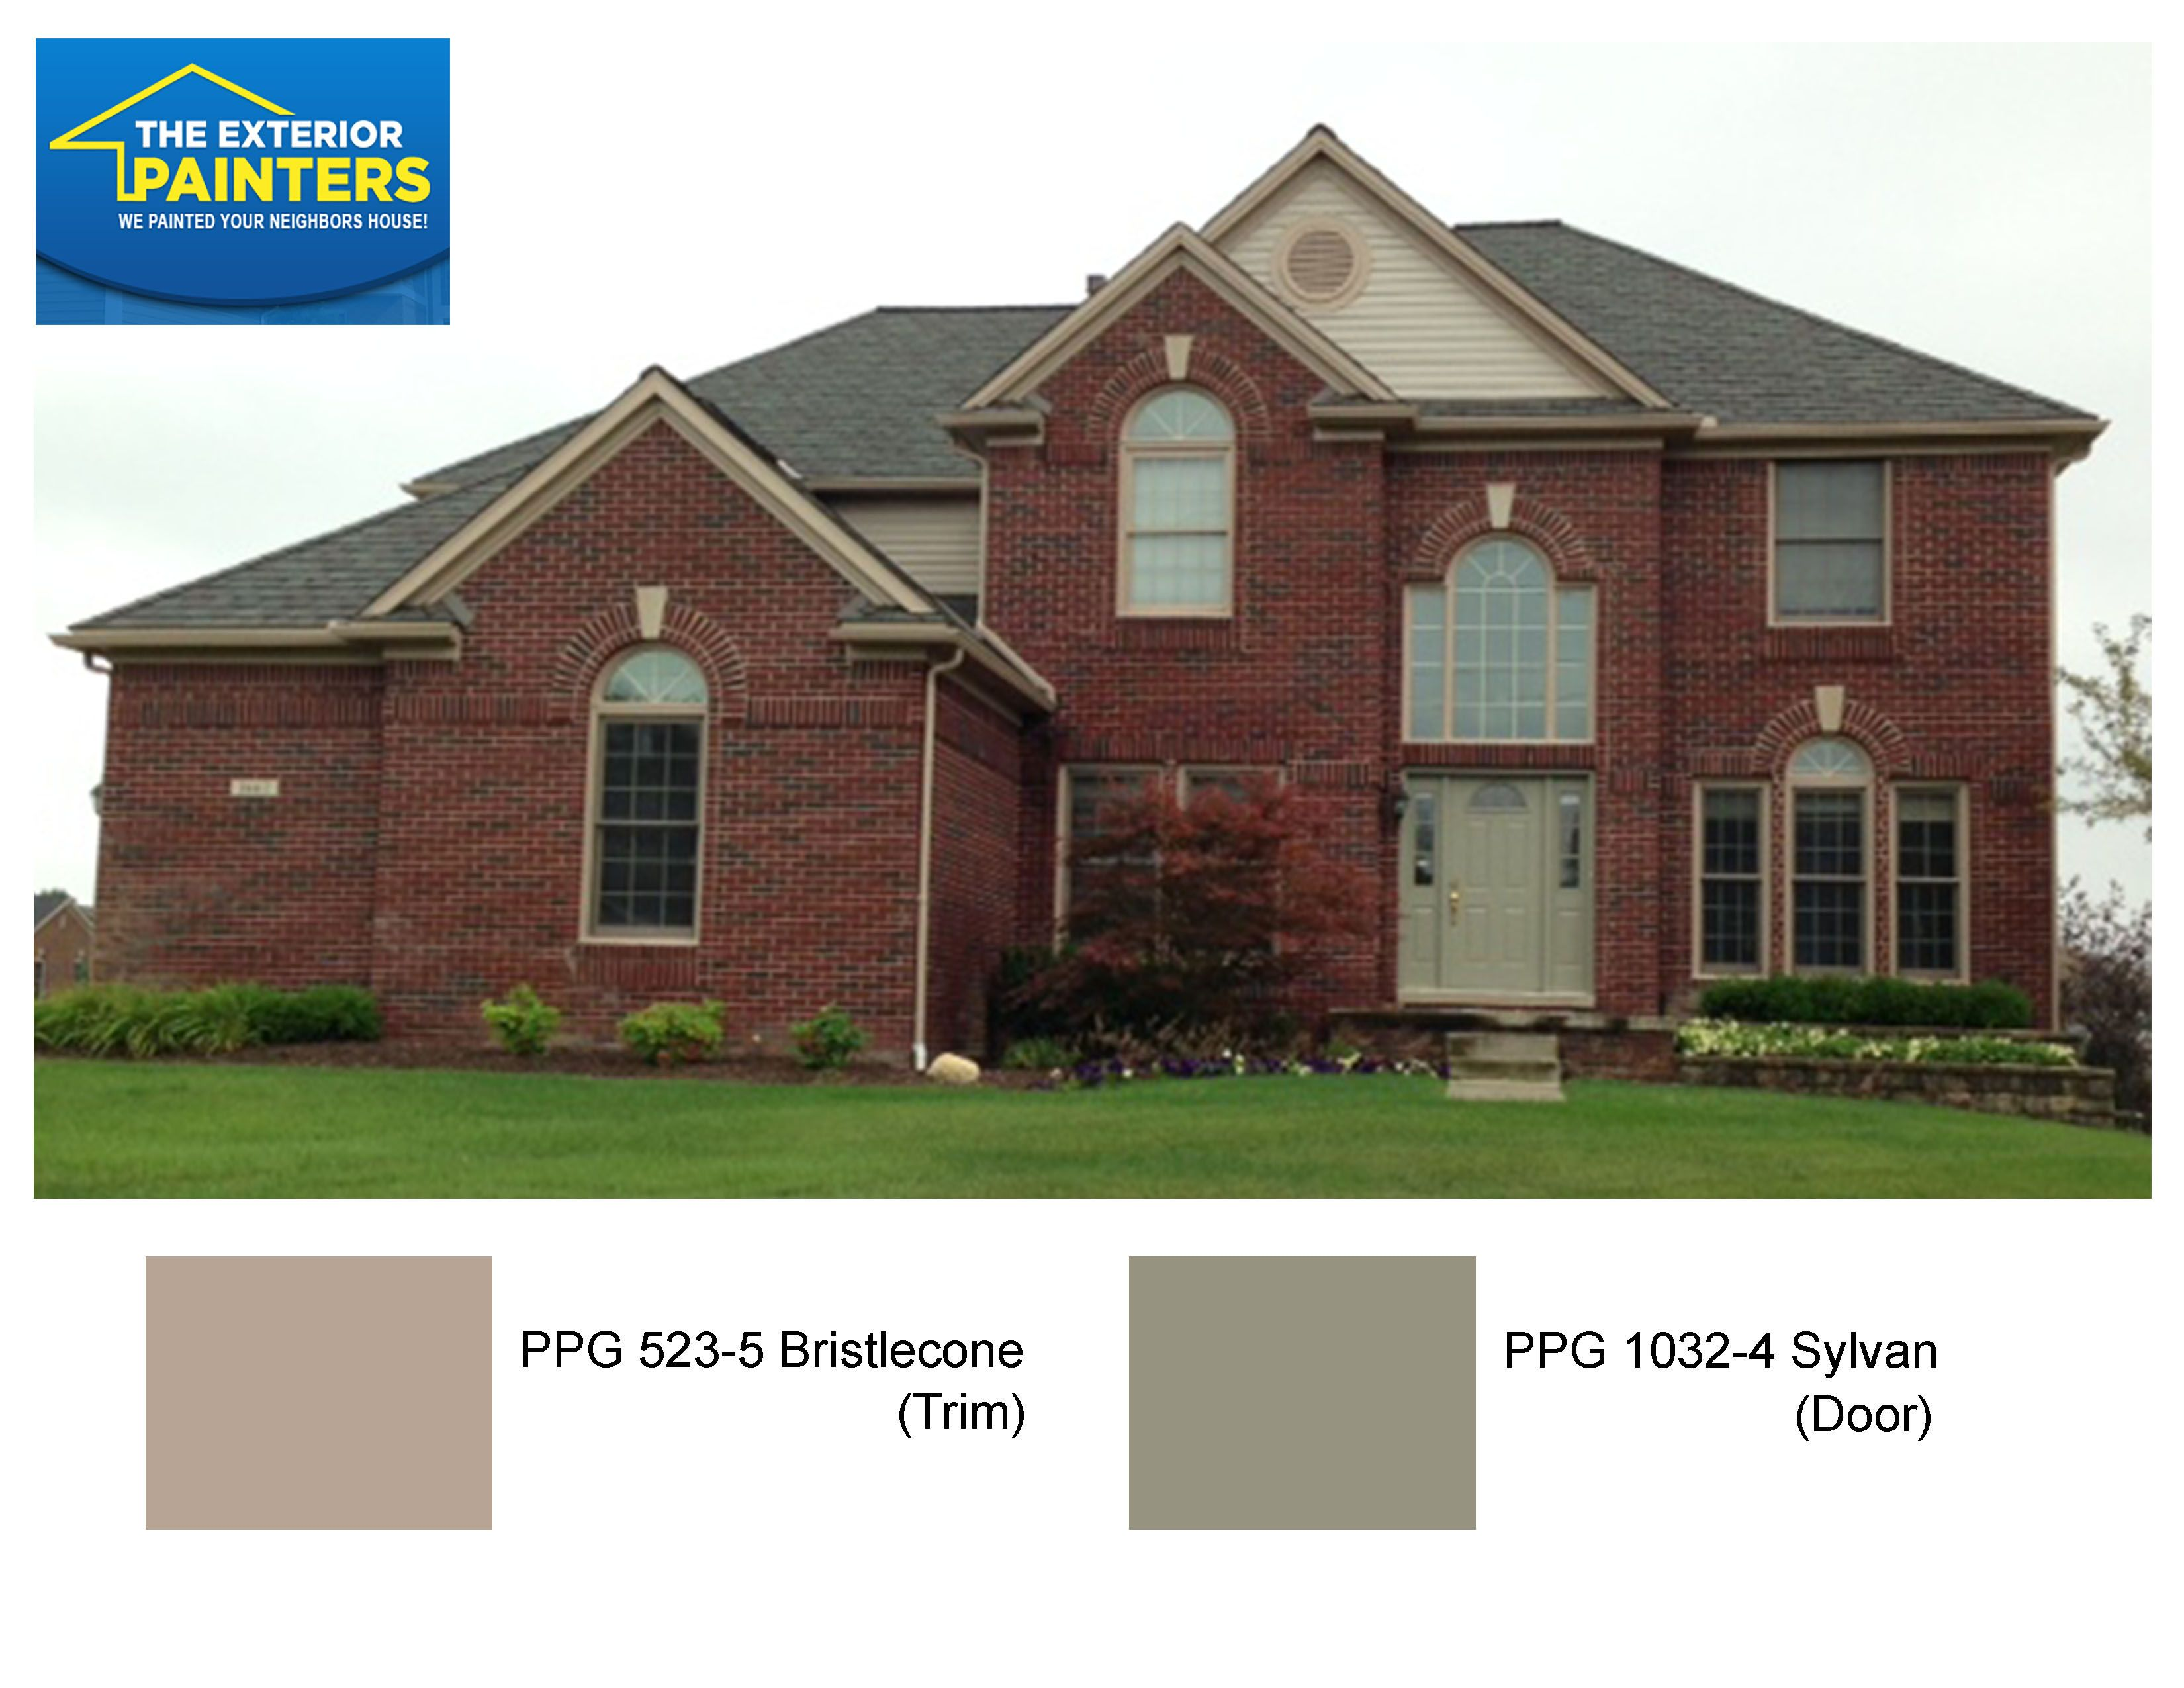 PPG 523-5 Bristlecone with PPG 1032-4 Sylvan for the front door.